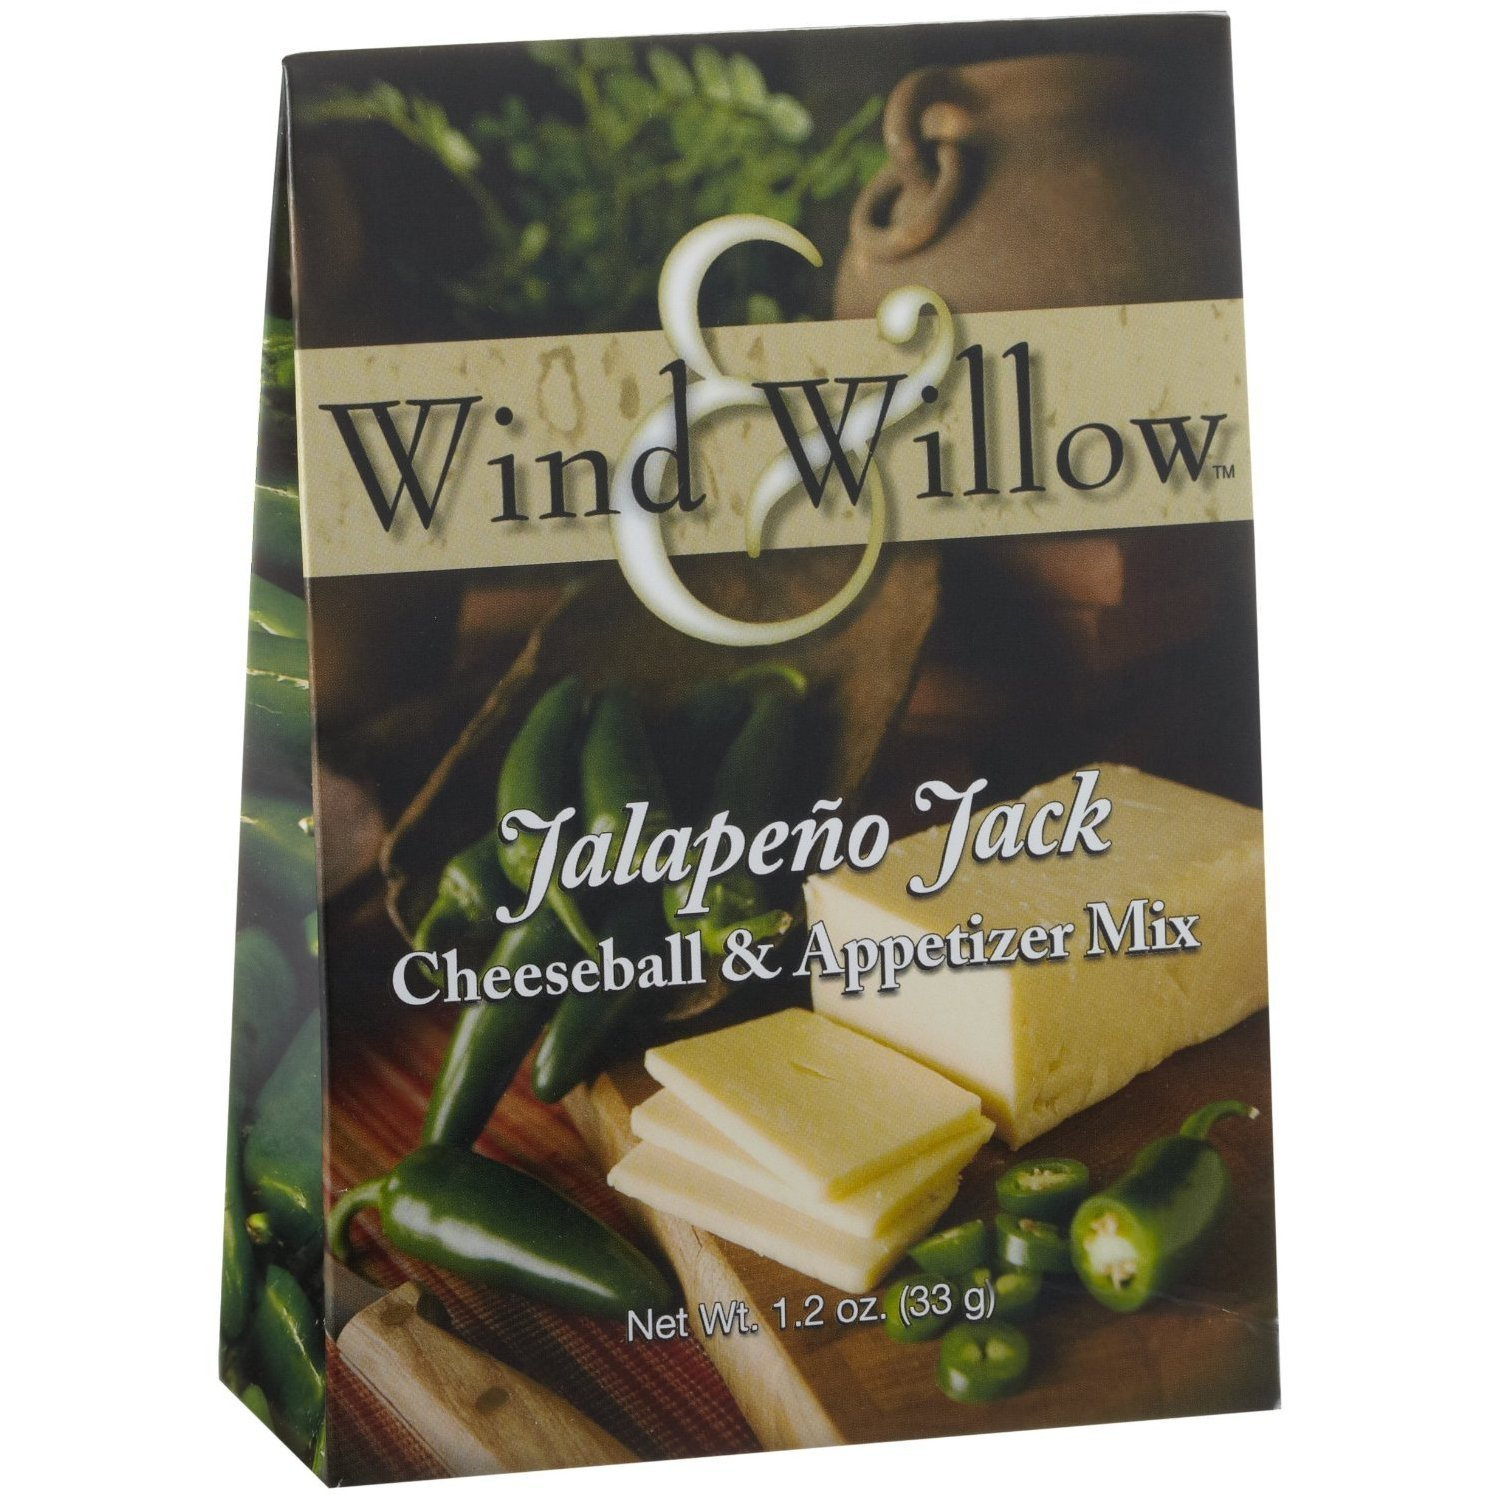 Wind and Willow Jalapeno Jack Cheeseball & Appetizer Mix - 1.2 Ounce (4 Pack) by Wind & Willow